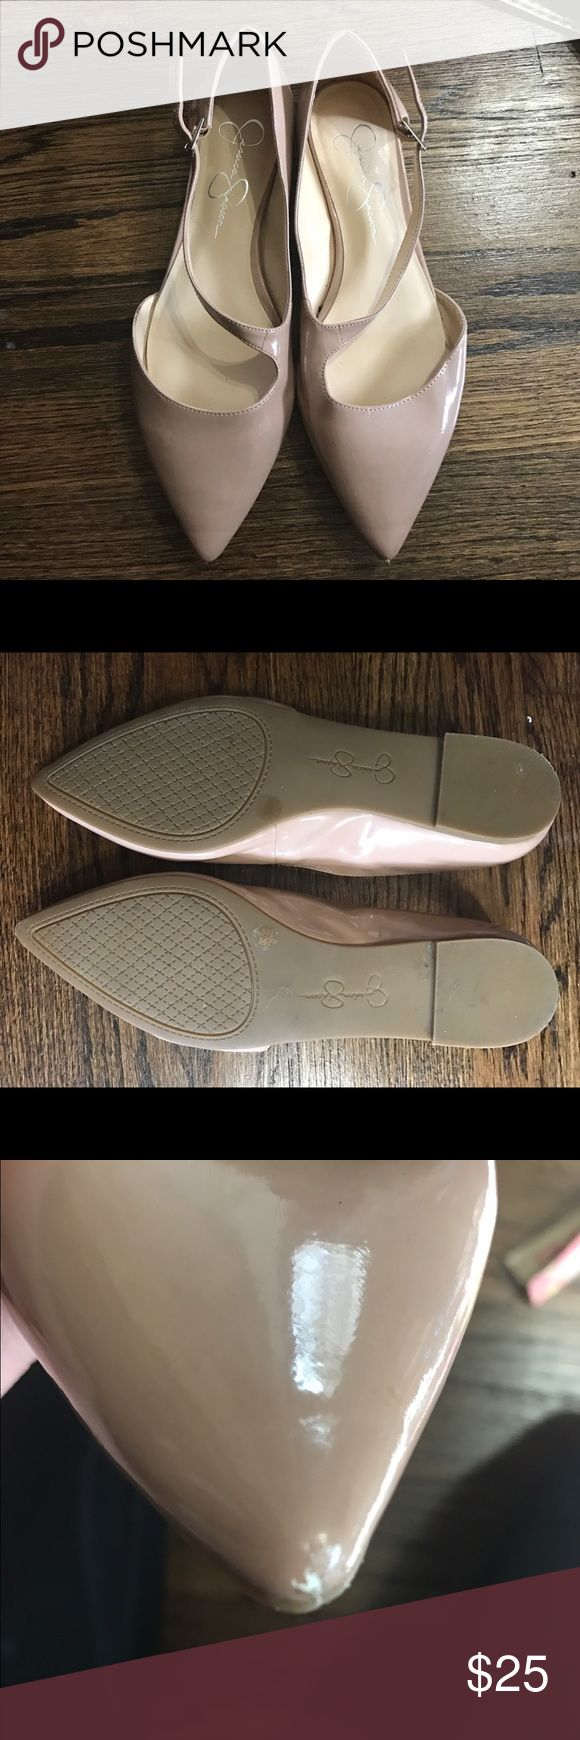 Sz 9 Jessica Simpson nude strappy flats Sz 9 very small scuff on one toe Jessica Simpson Shoes Flats & Loafers